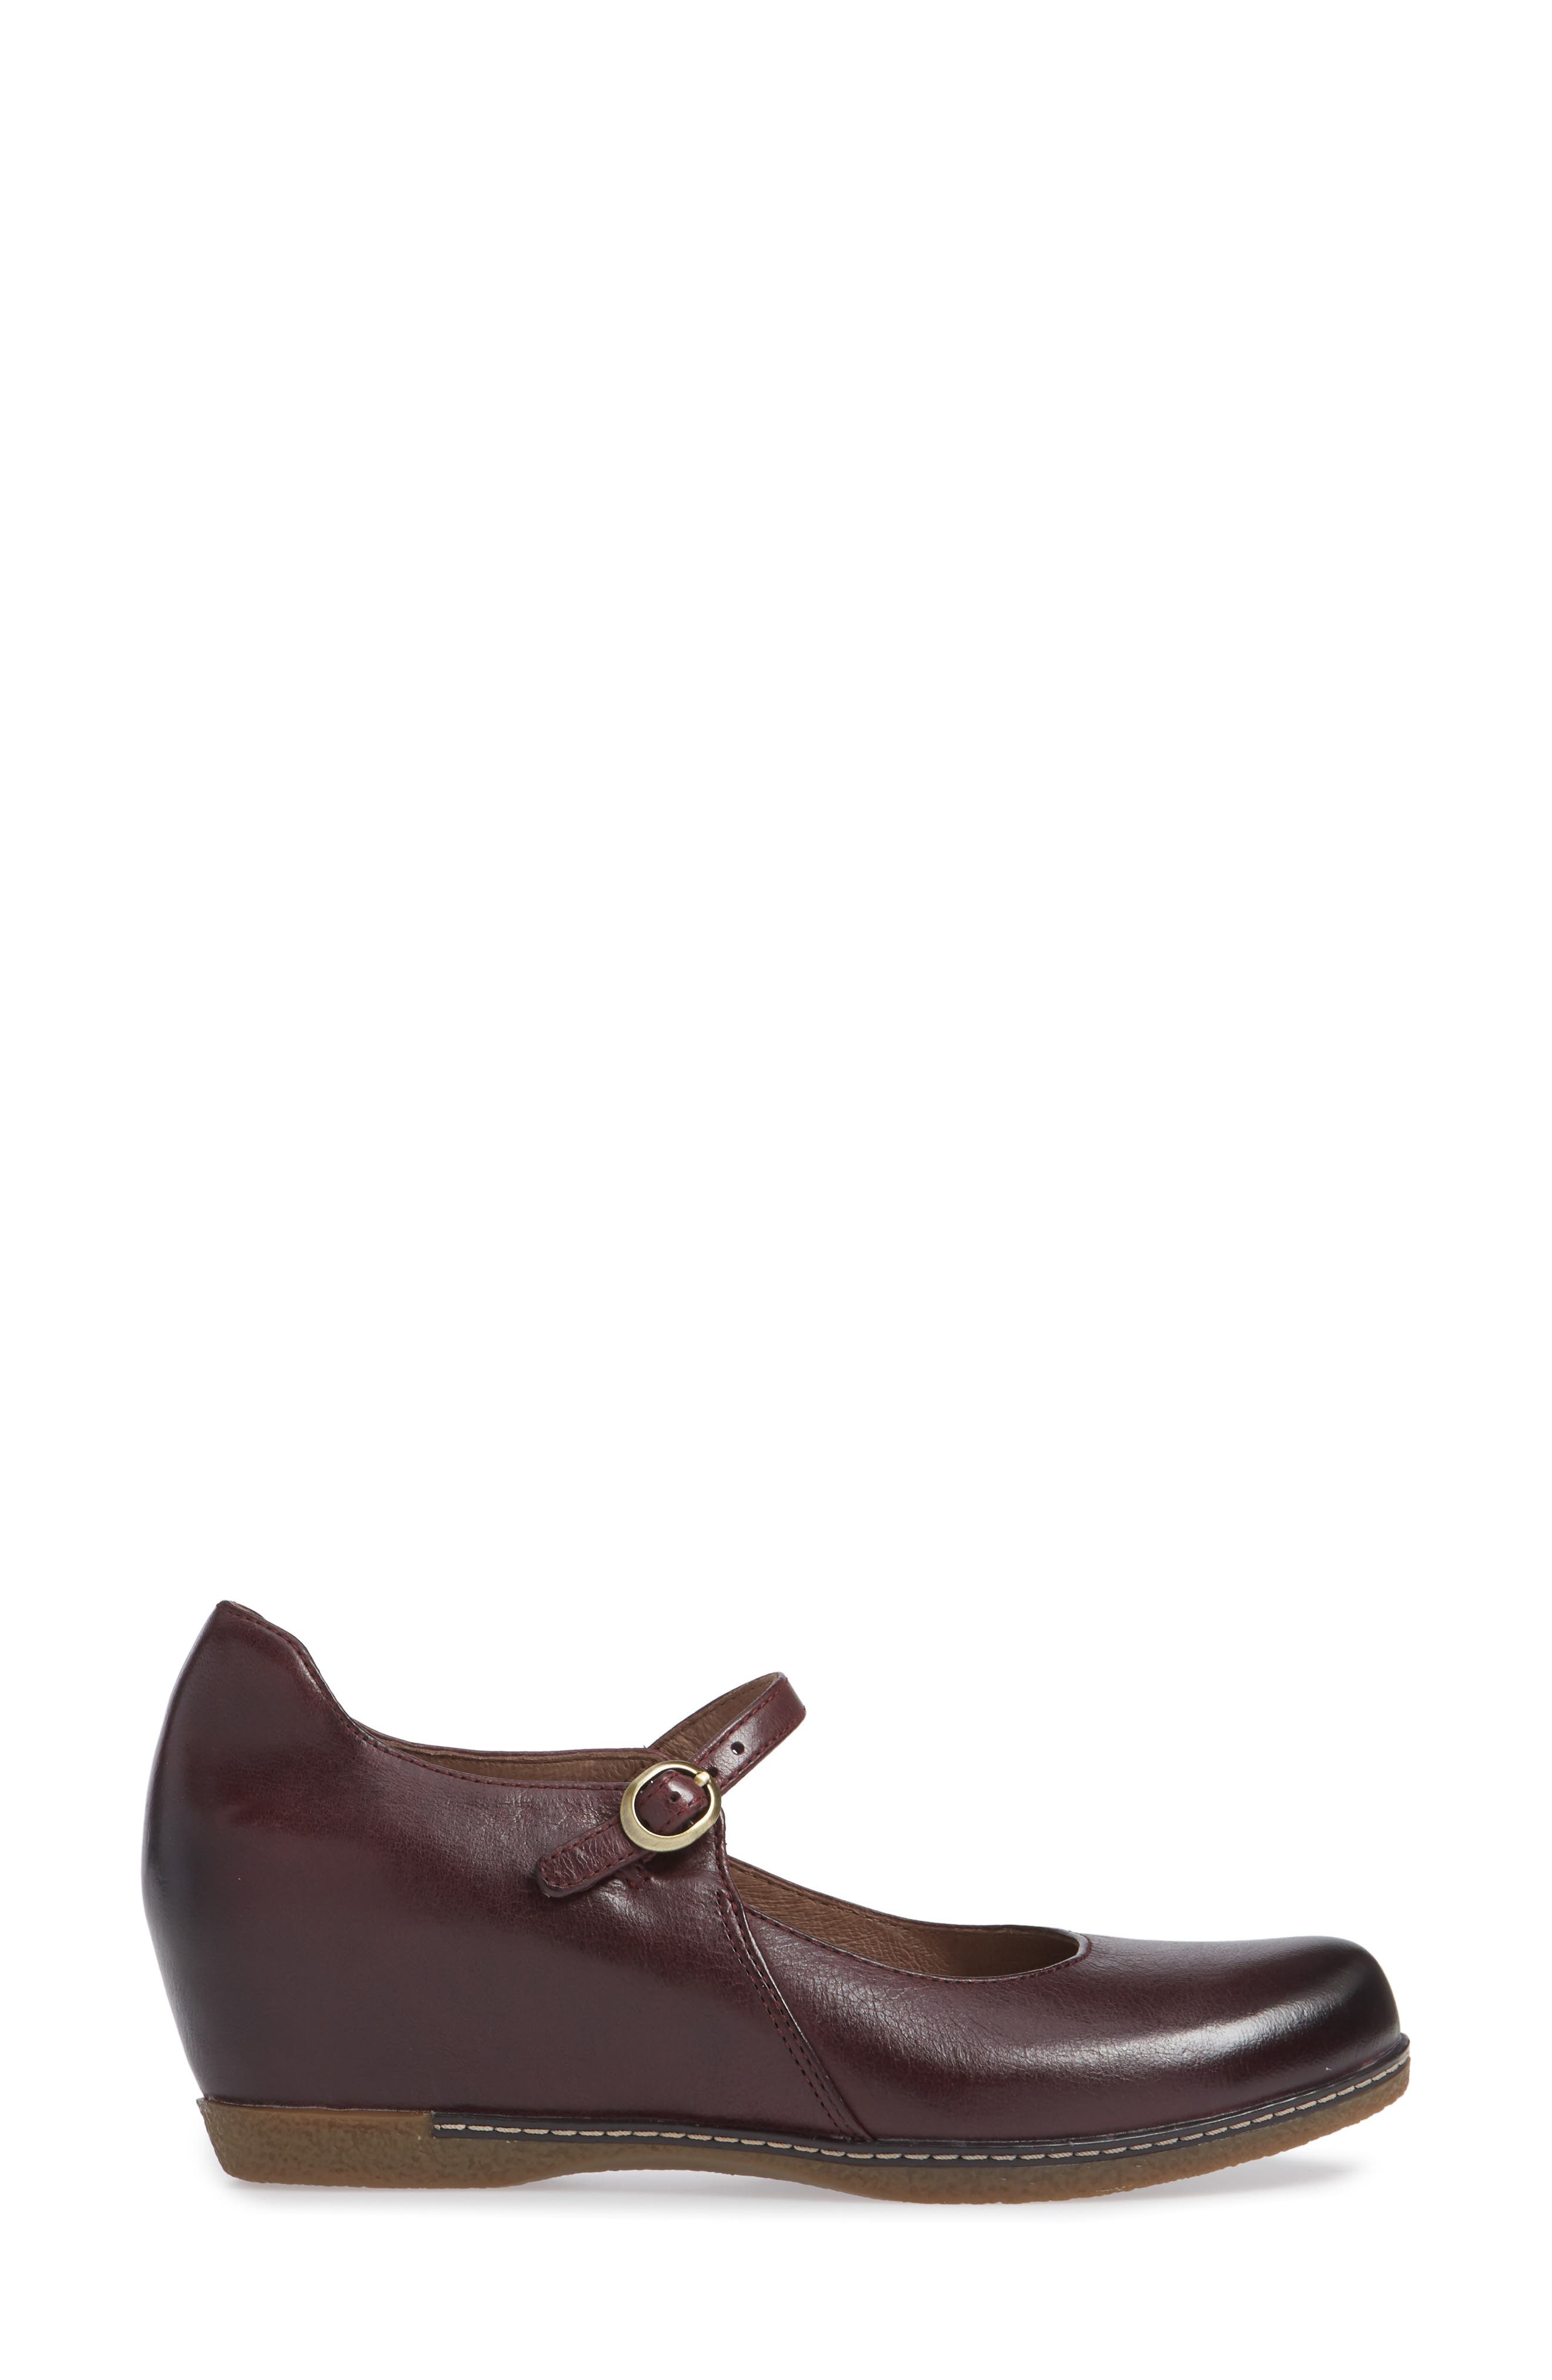 Loralie Mary Jane Wedge,                             Alternate thumbnail 3, color,                             Wine Burnished Leather